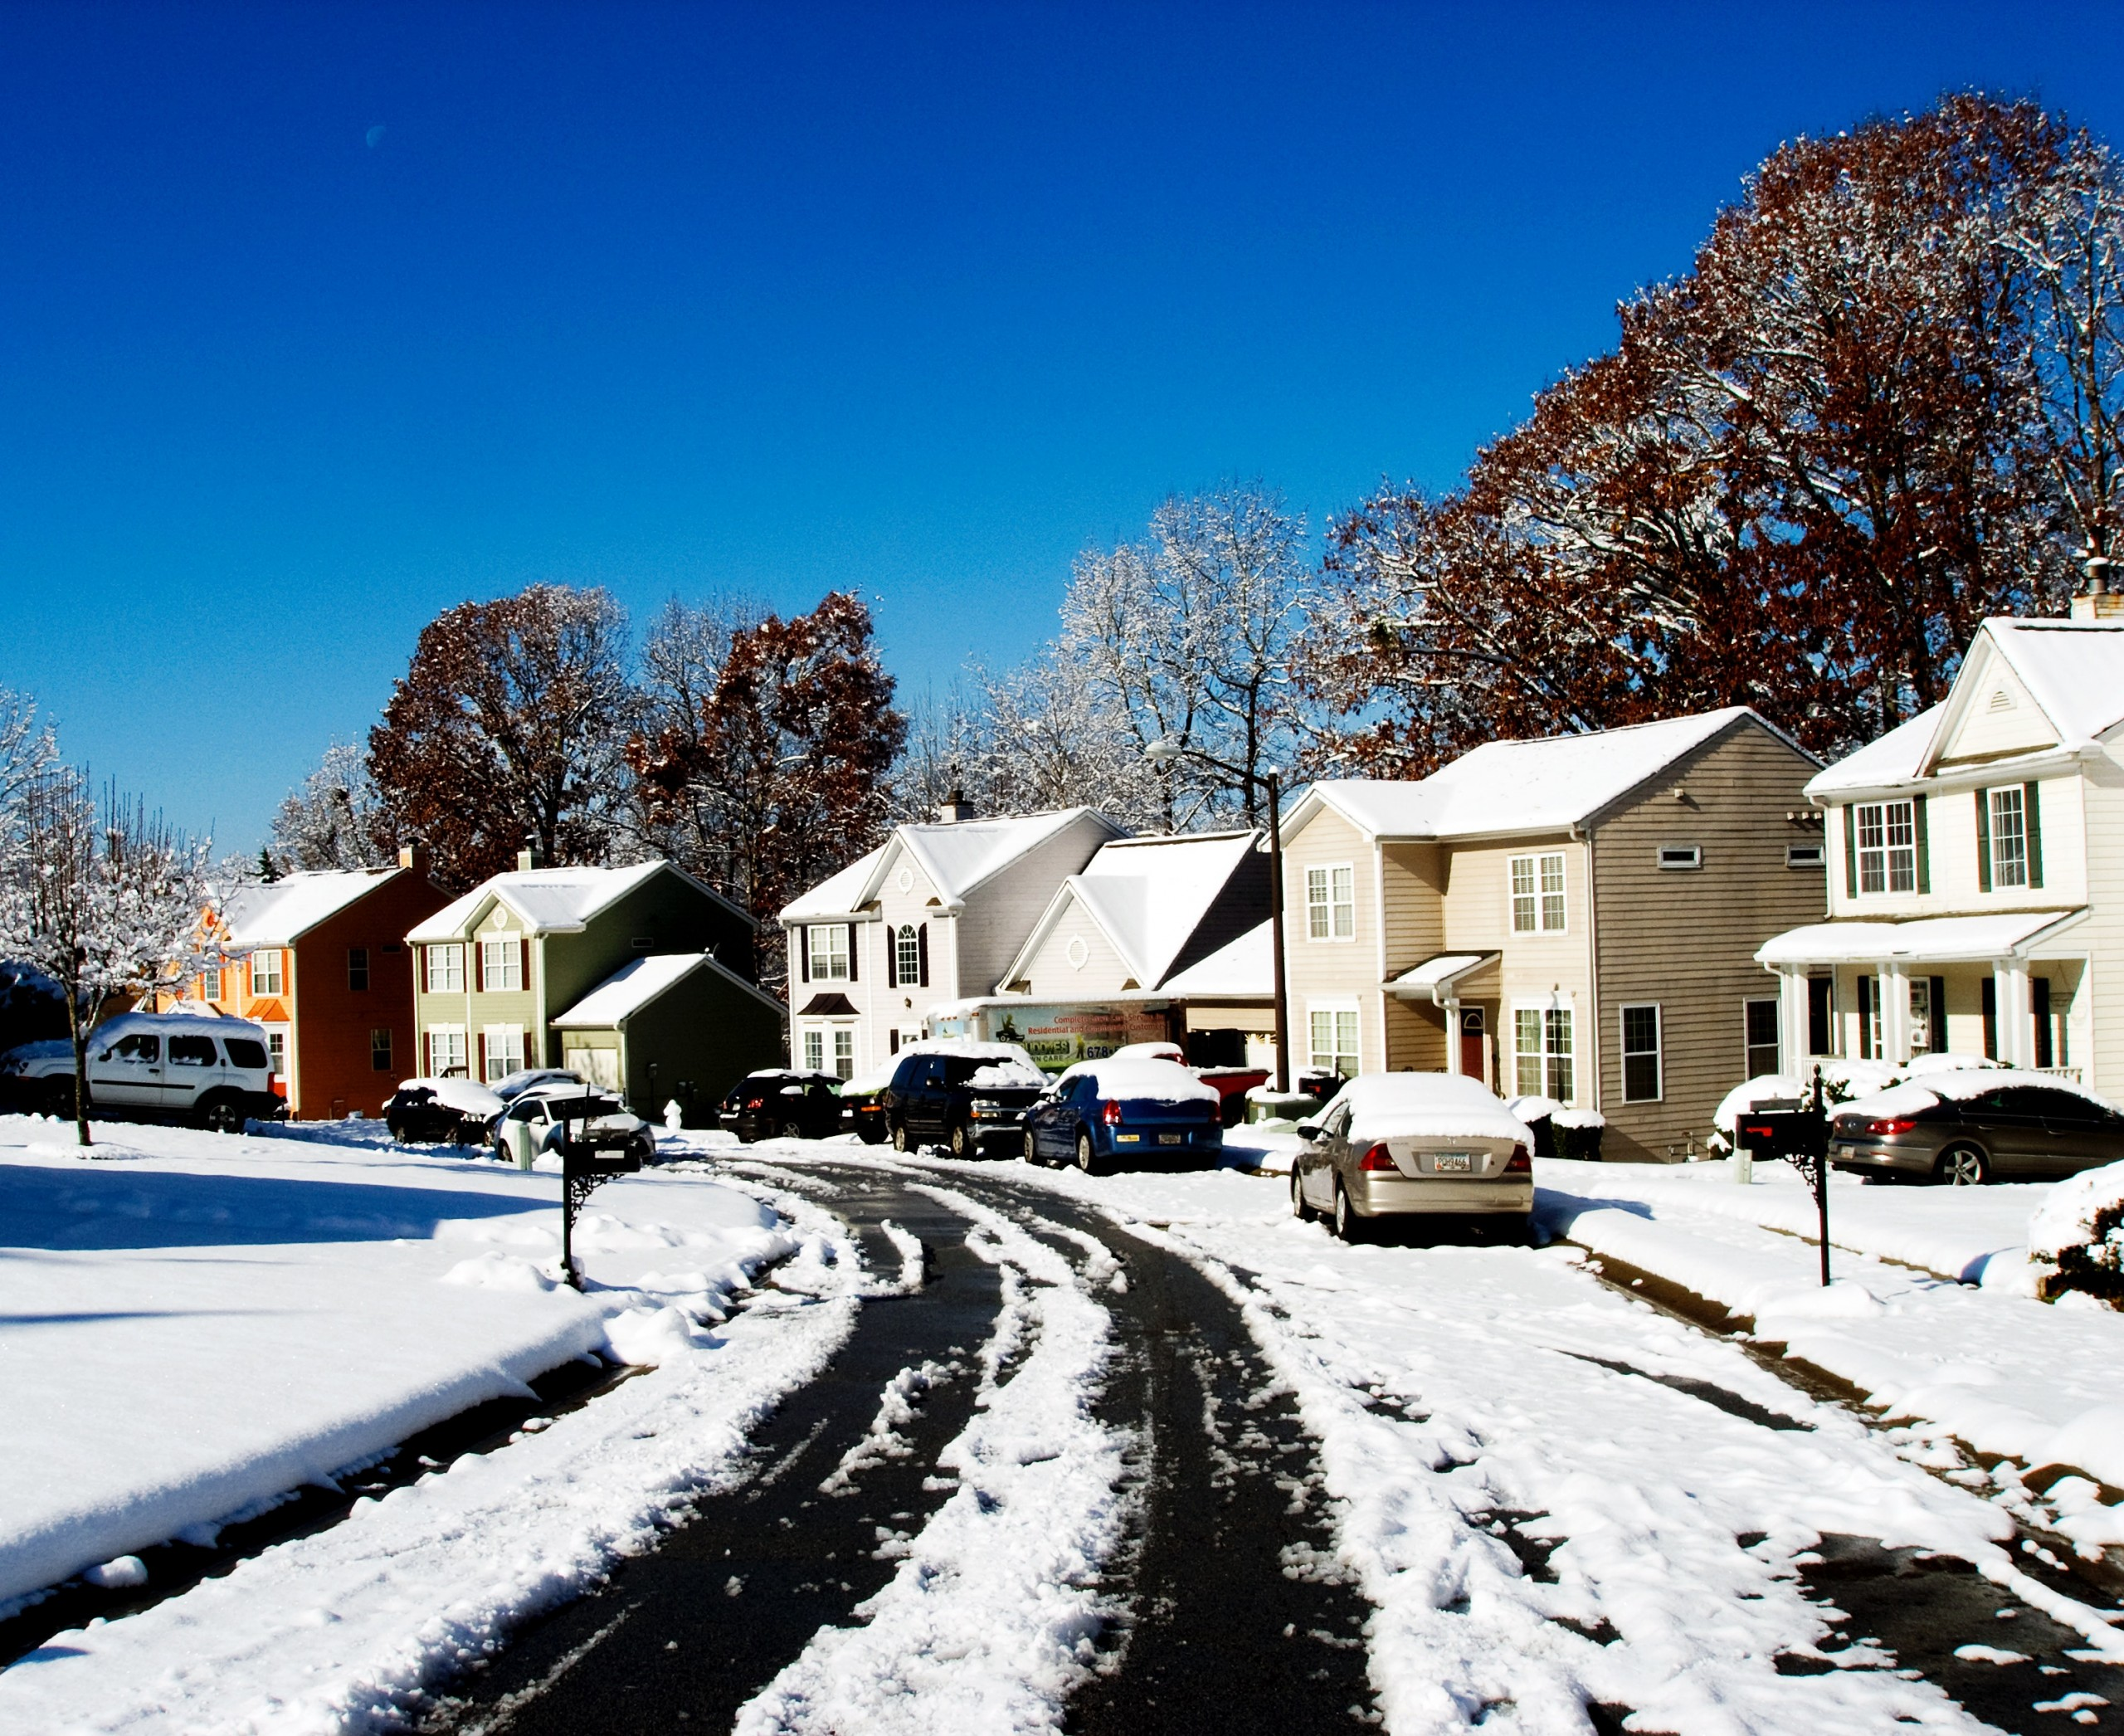 neighborhood covered in snow